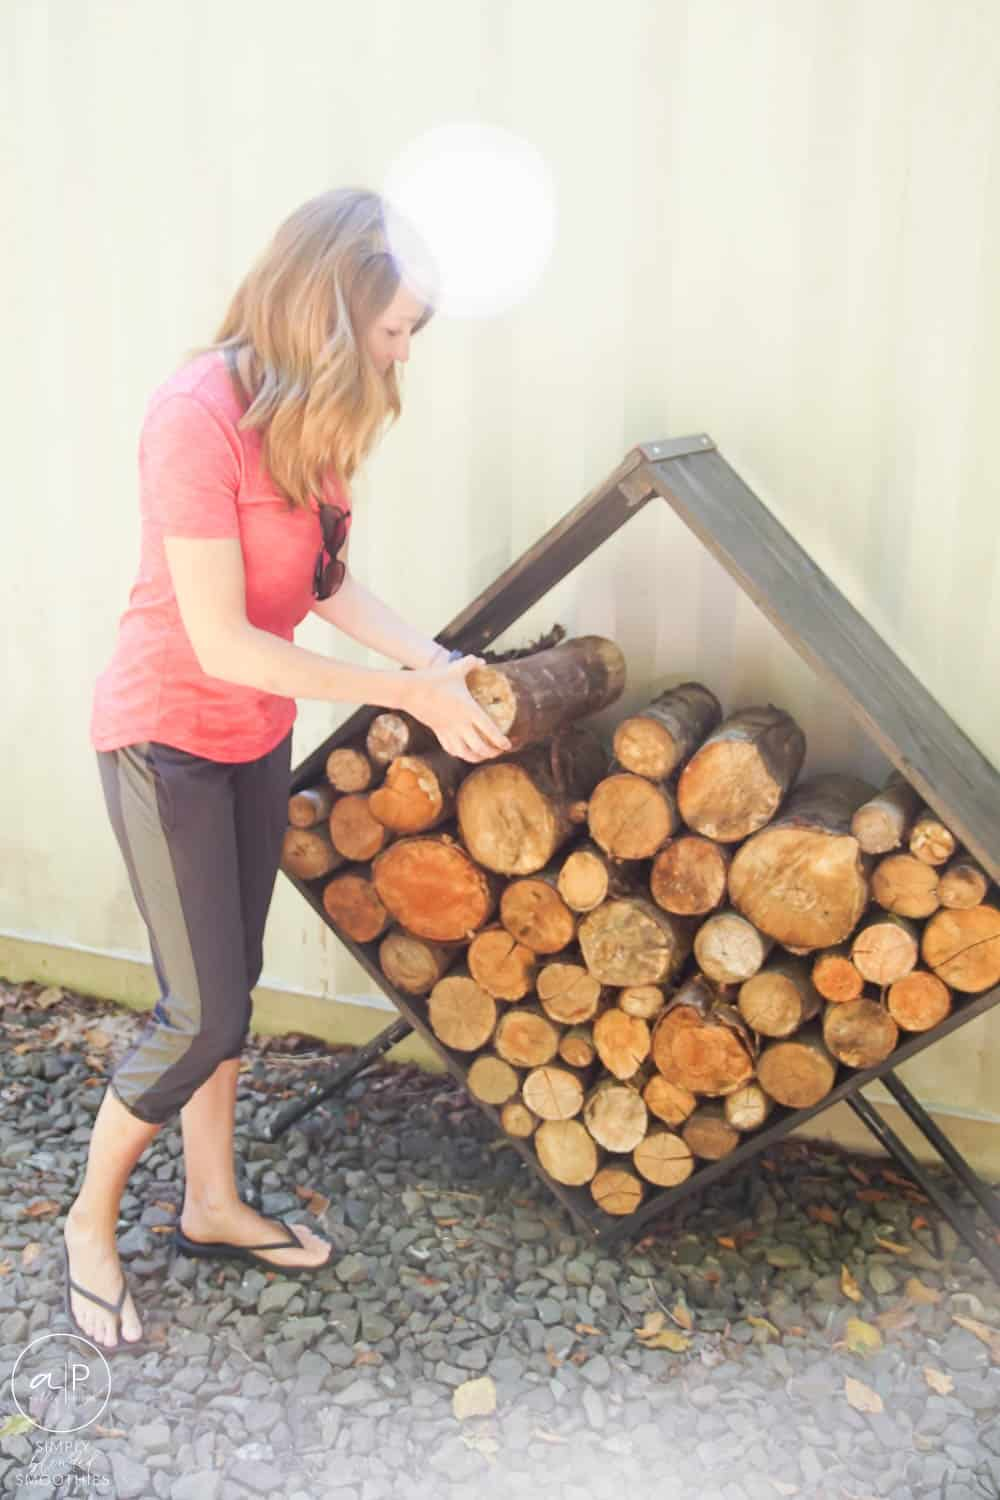 woman placing firewood in a modern holder